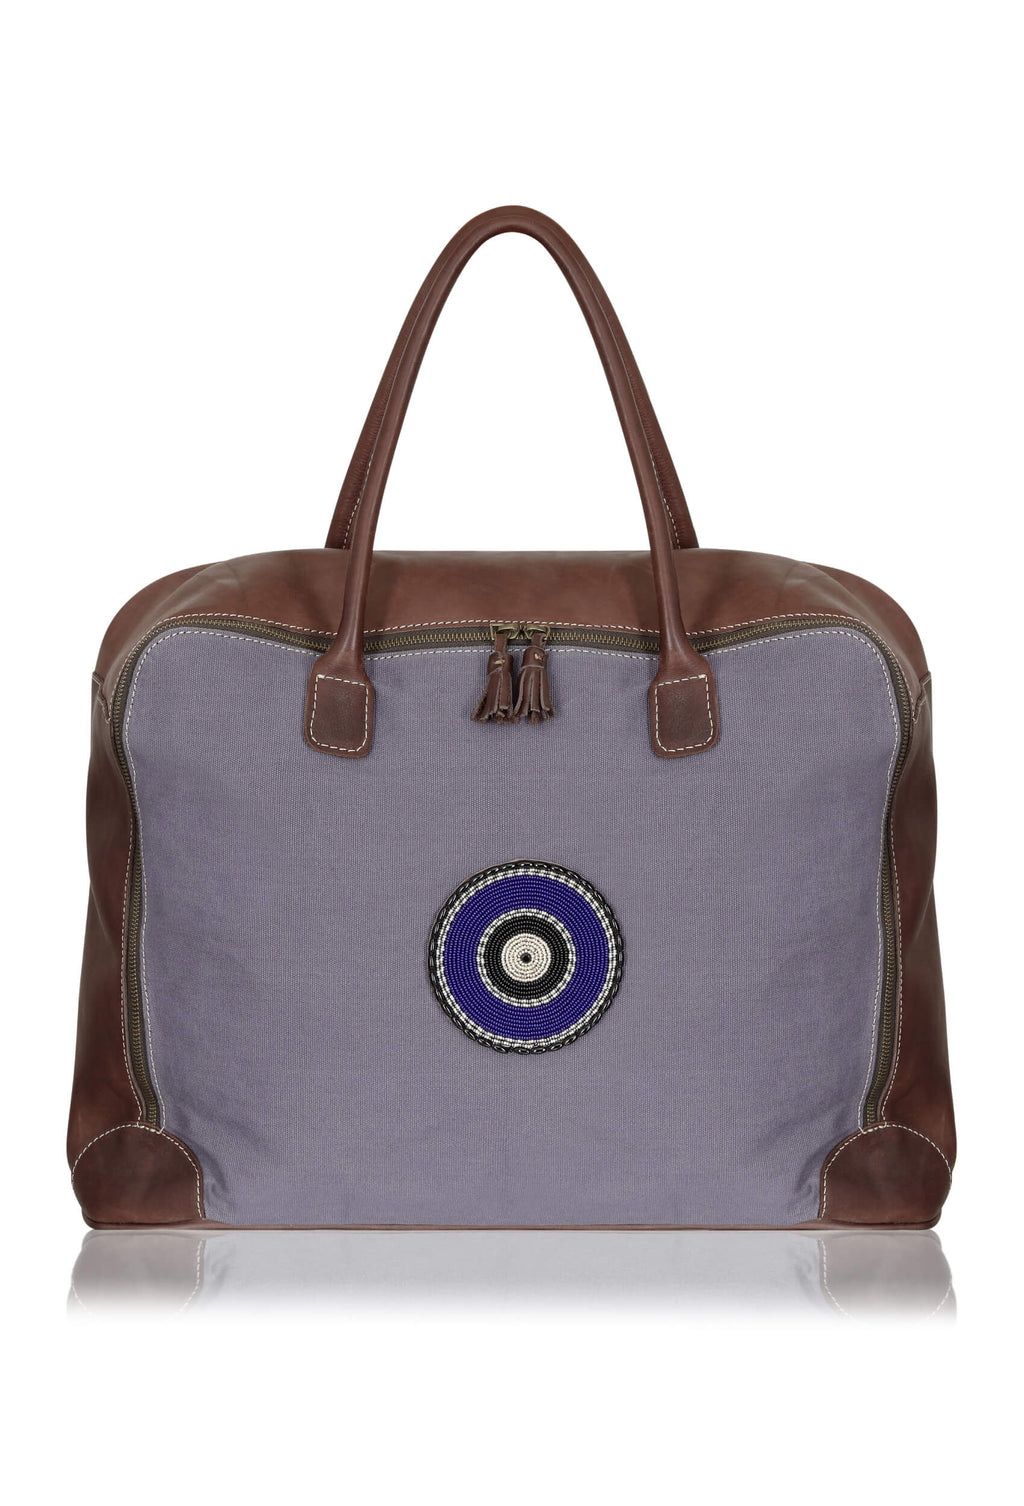 slate-grey-canvas-luggage-leather-suitcase